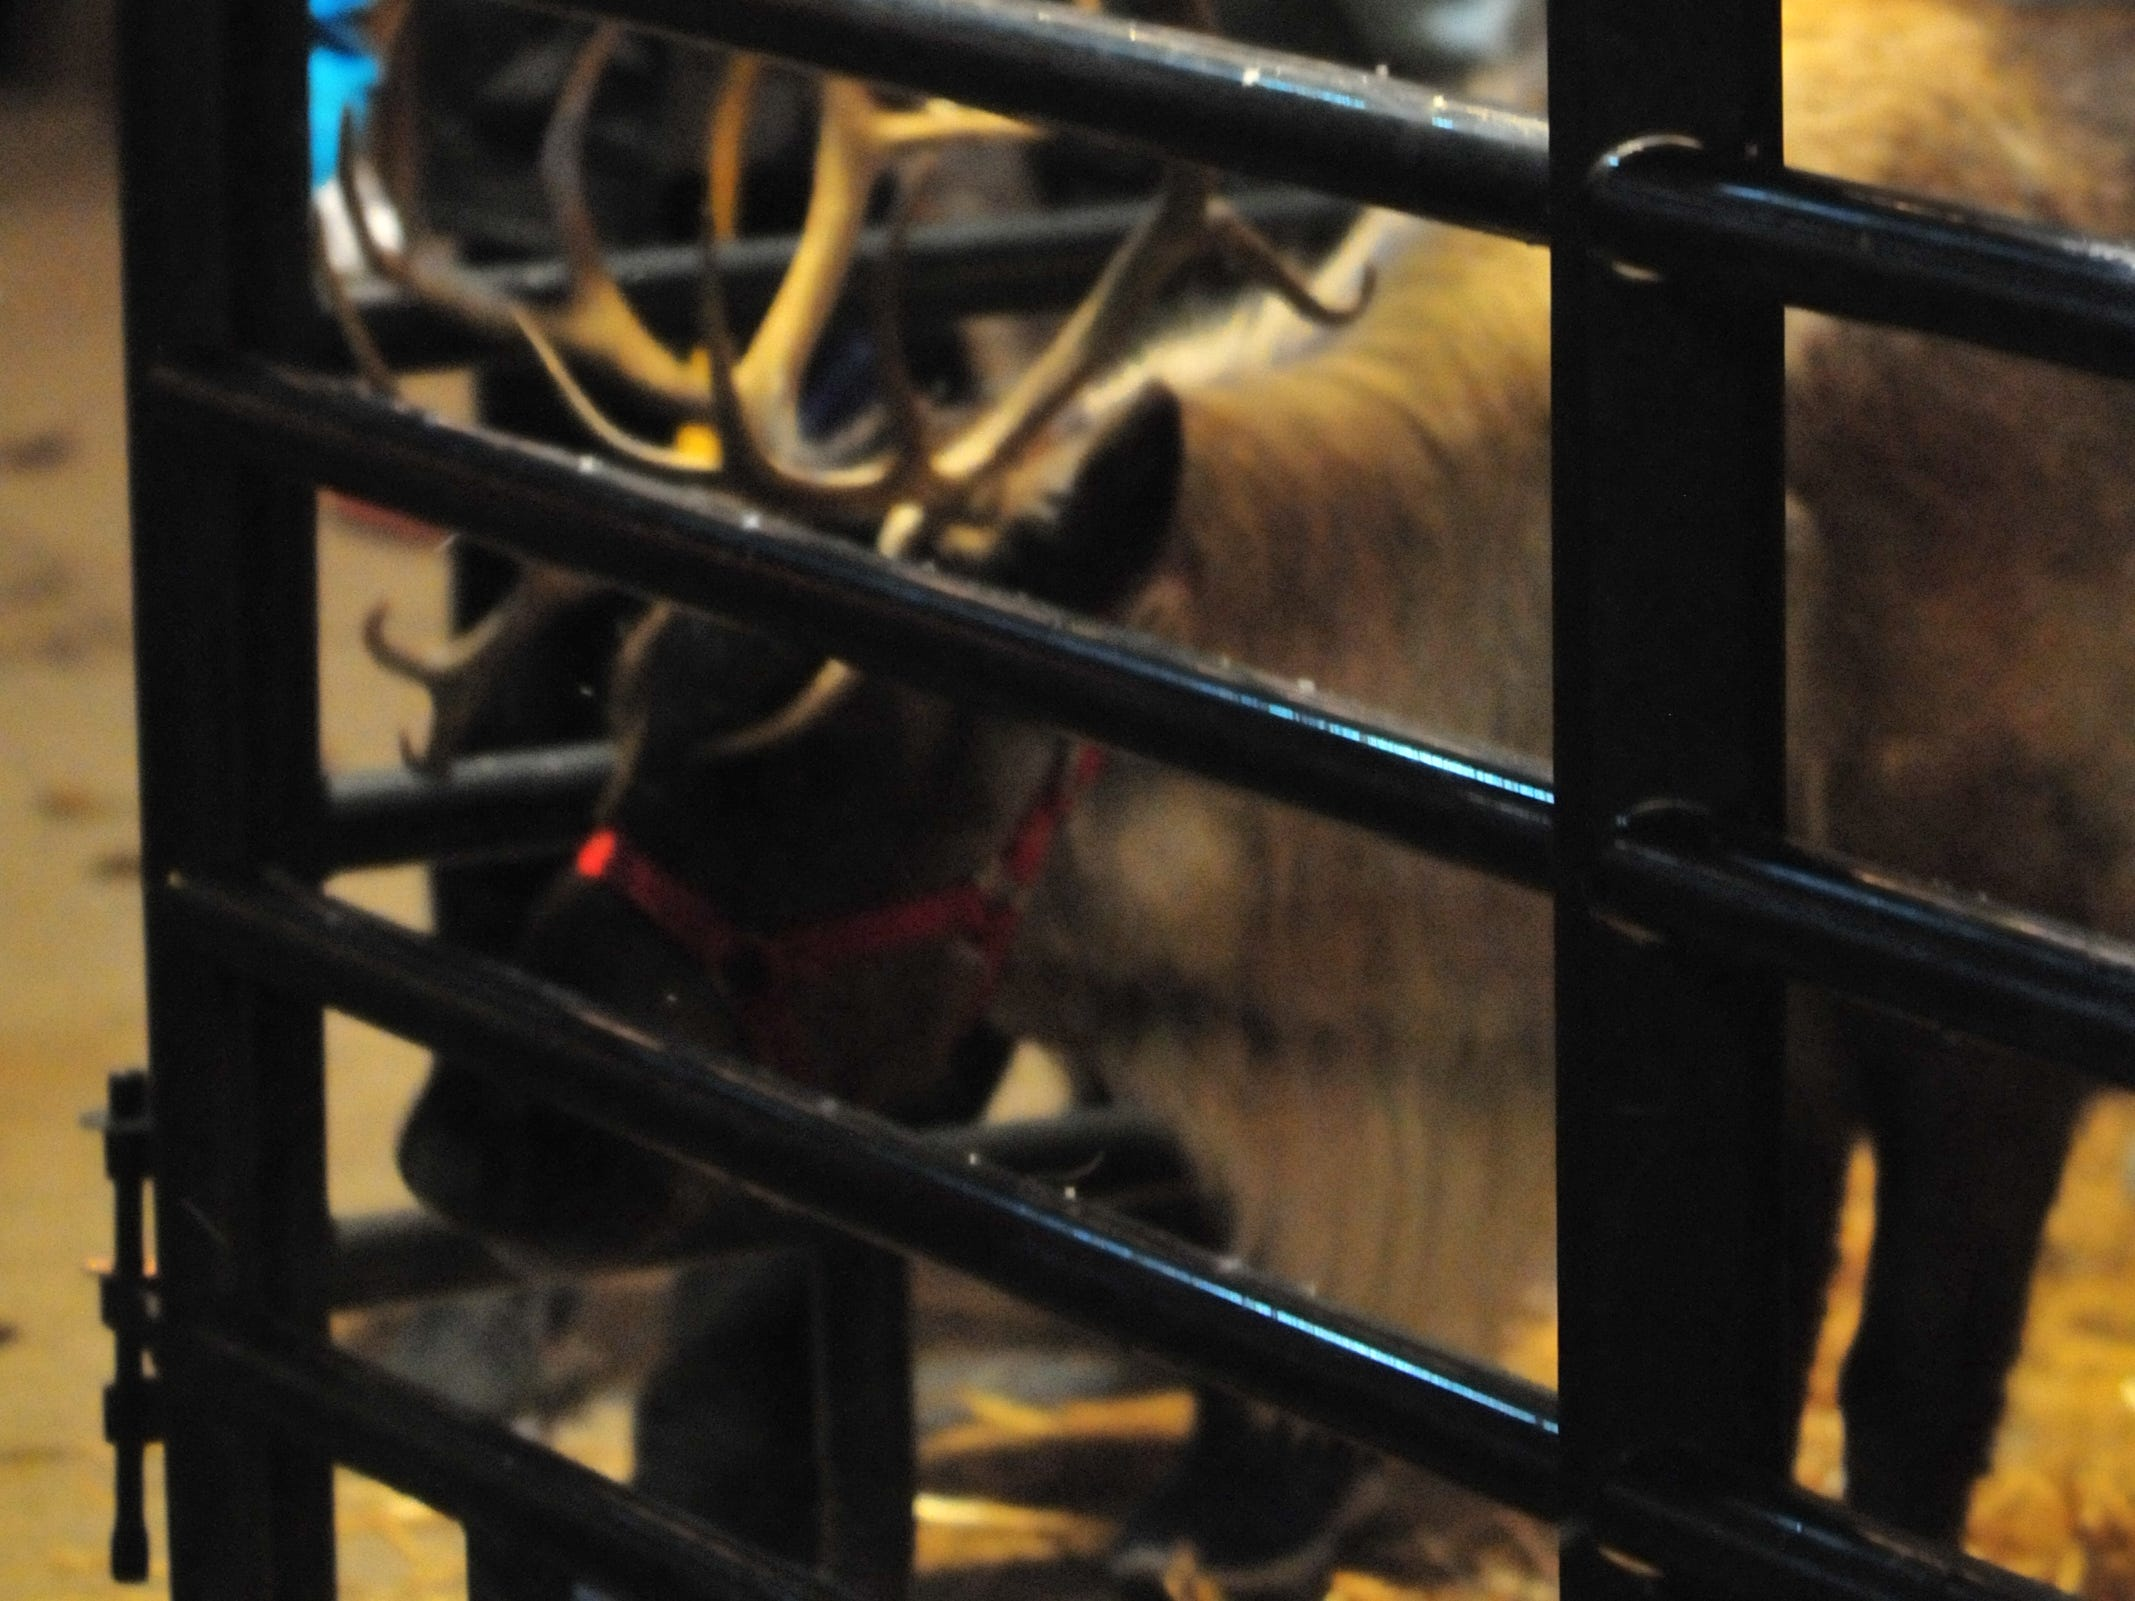 Reindeer drew plenty of attention Tuesday during the 14th annual Old-Fashioned Christmas Festival.